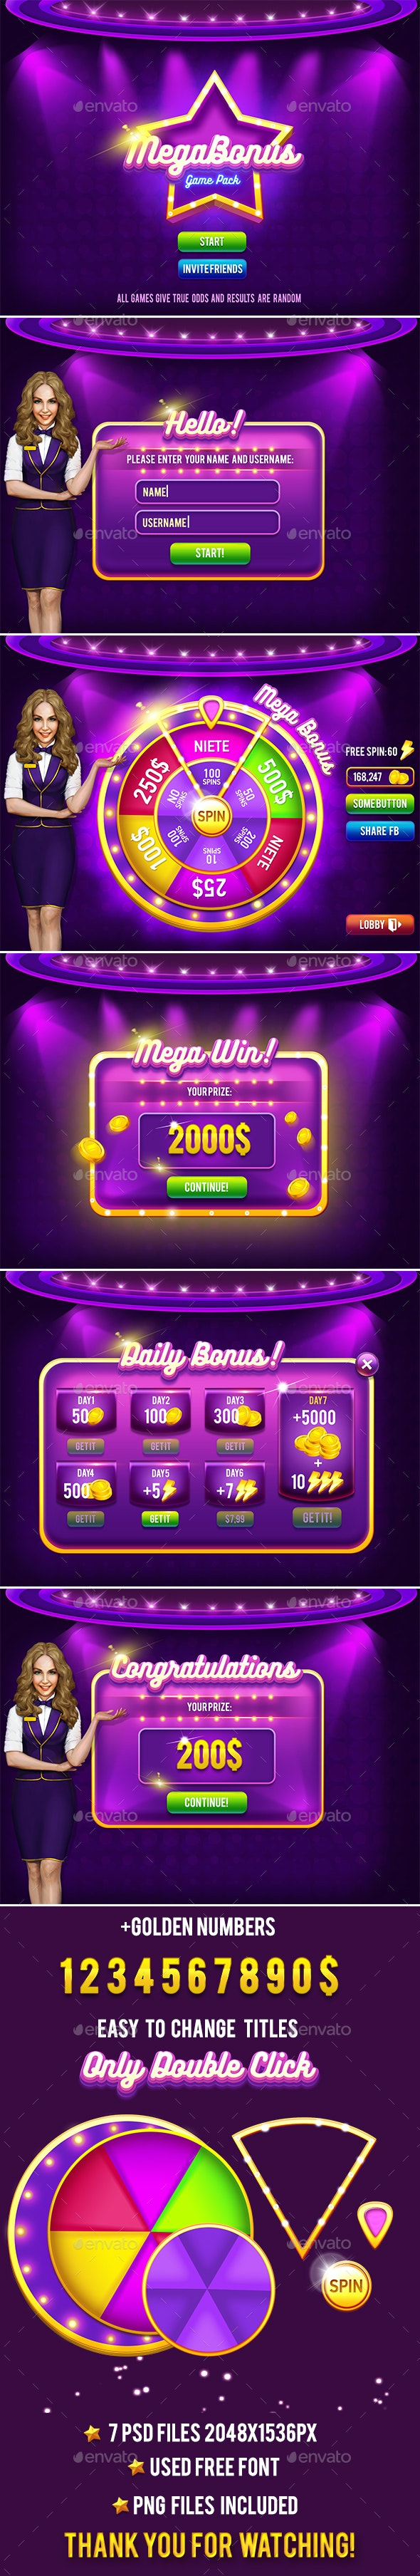 Casino Lucky Wheel Game Pack #2 - Game Kits Game Assets